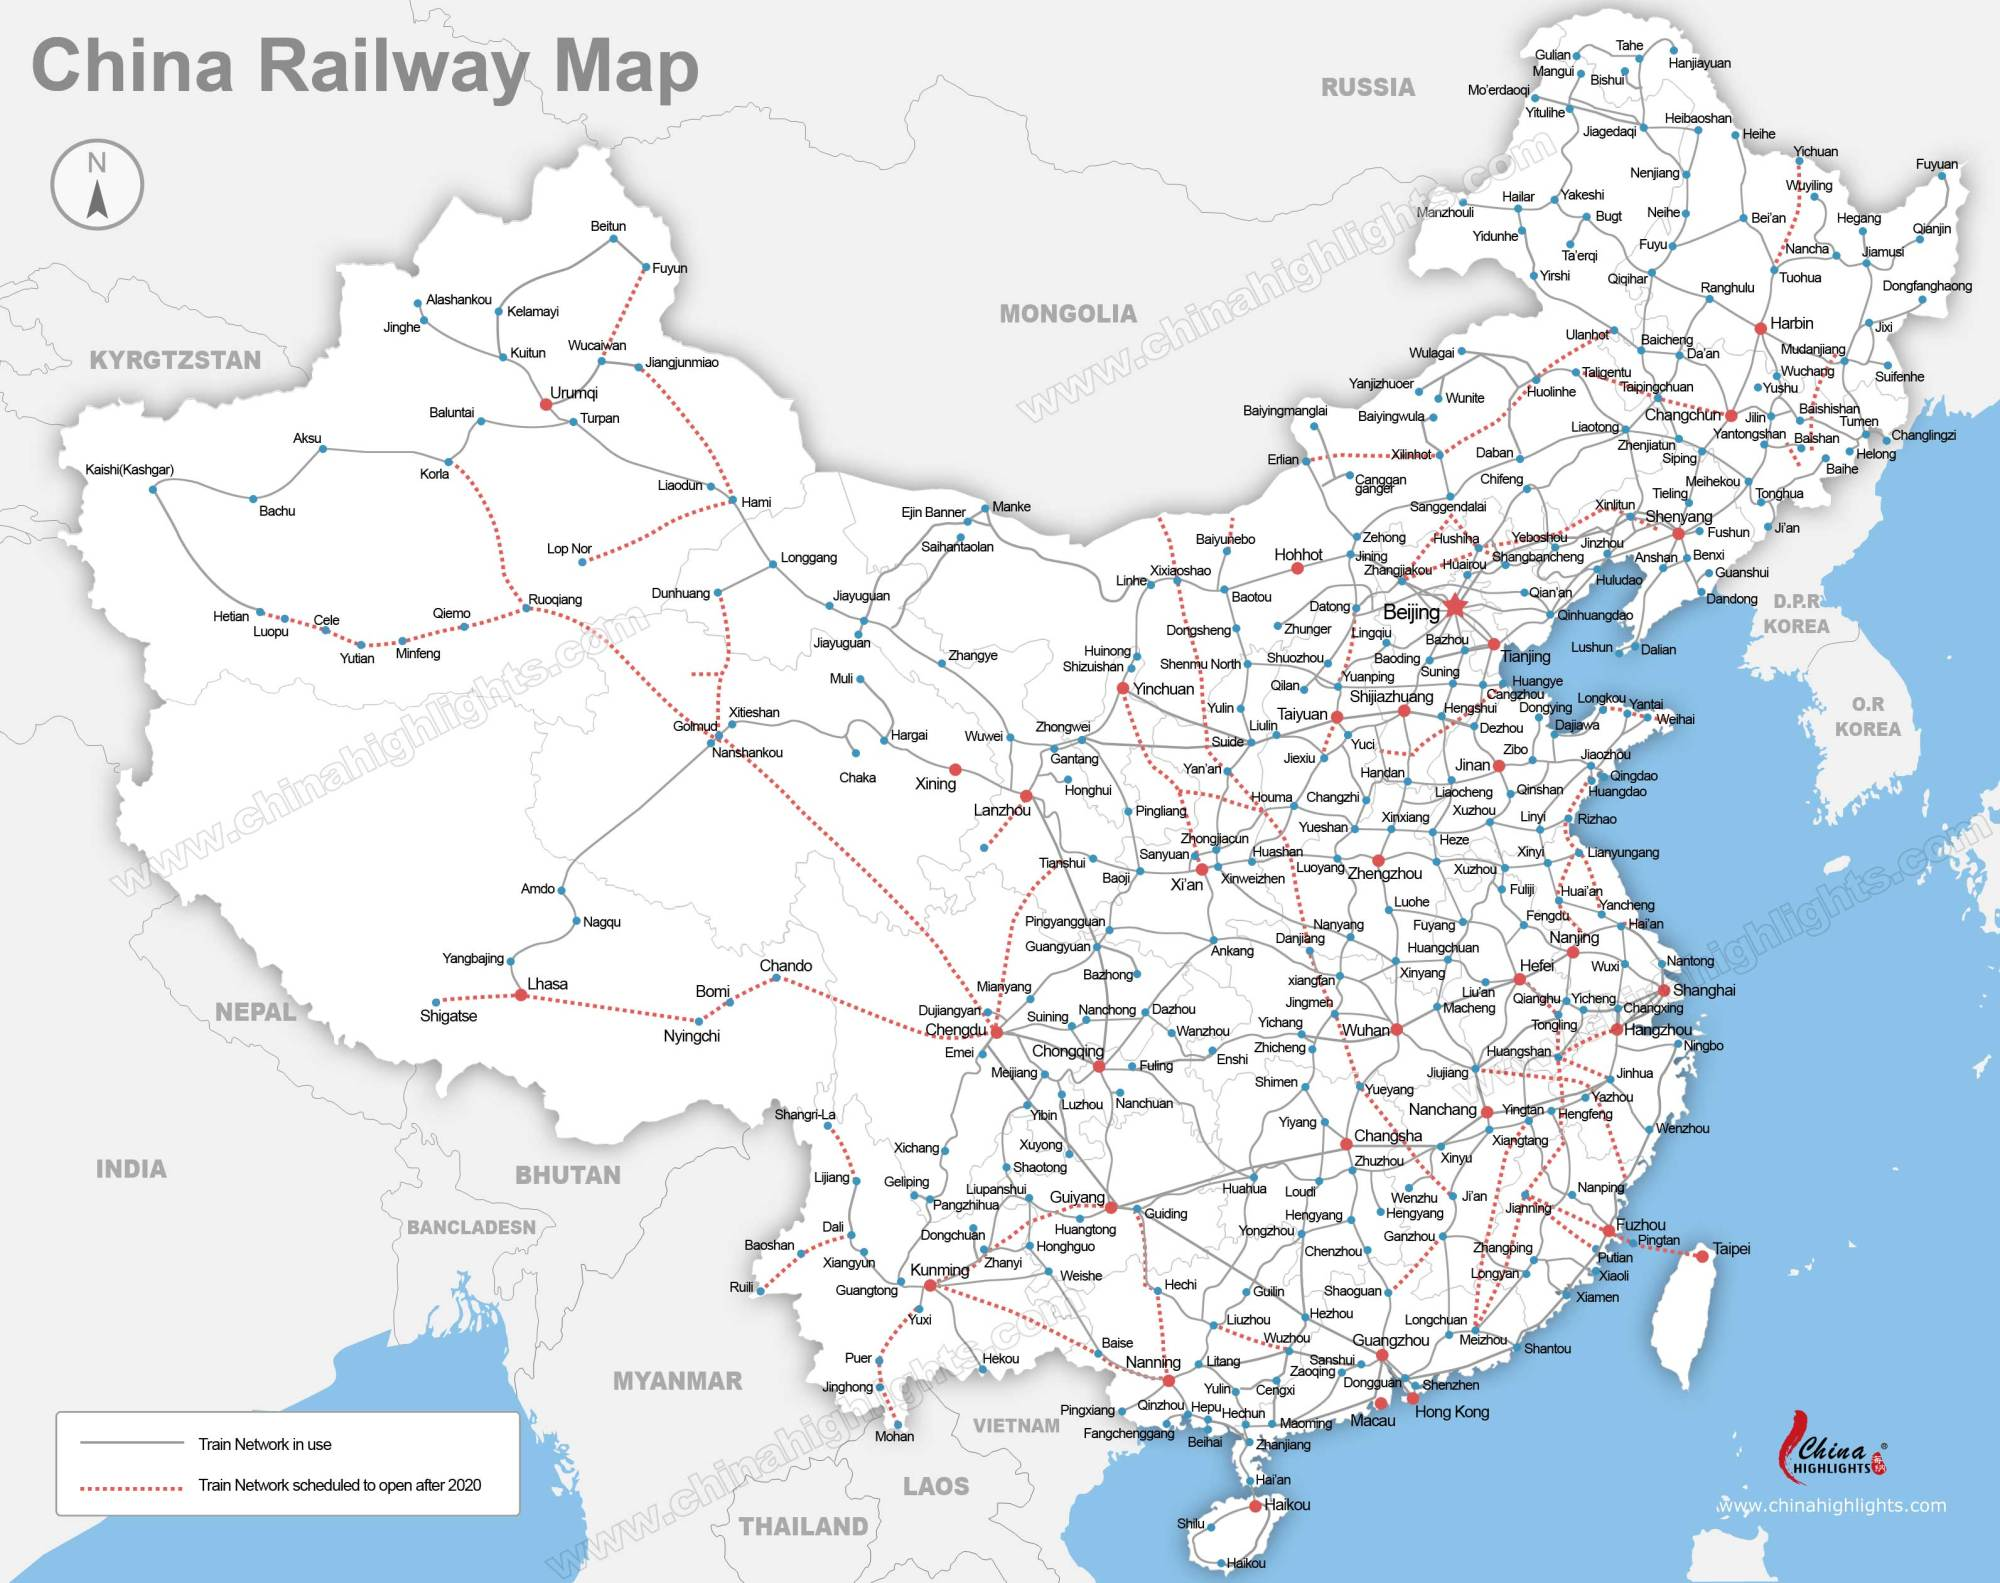 hight resolution of www chinahighlights com image map china railway map big jpg